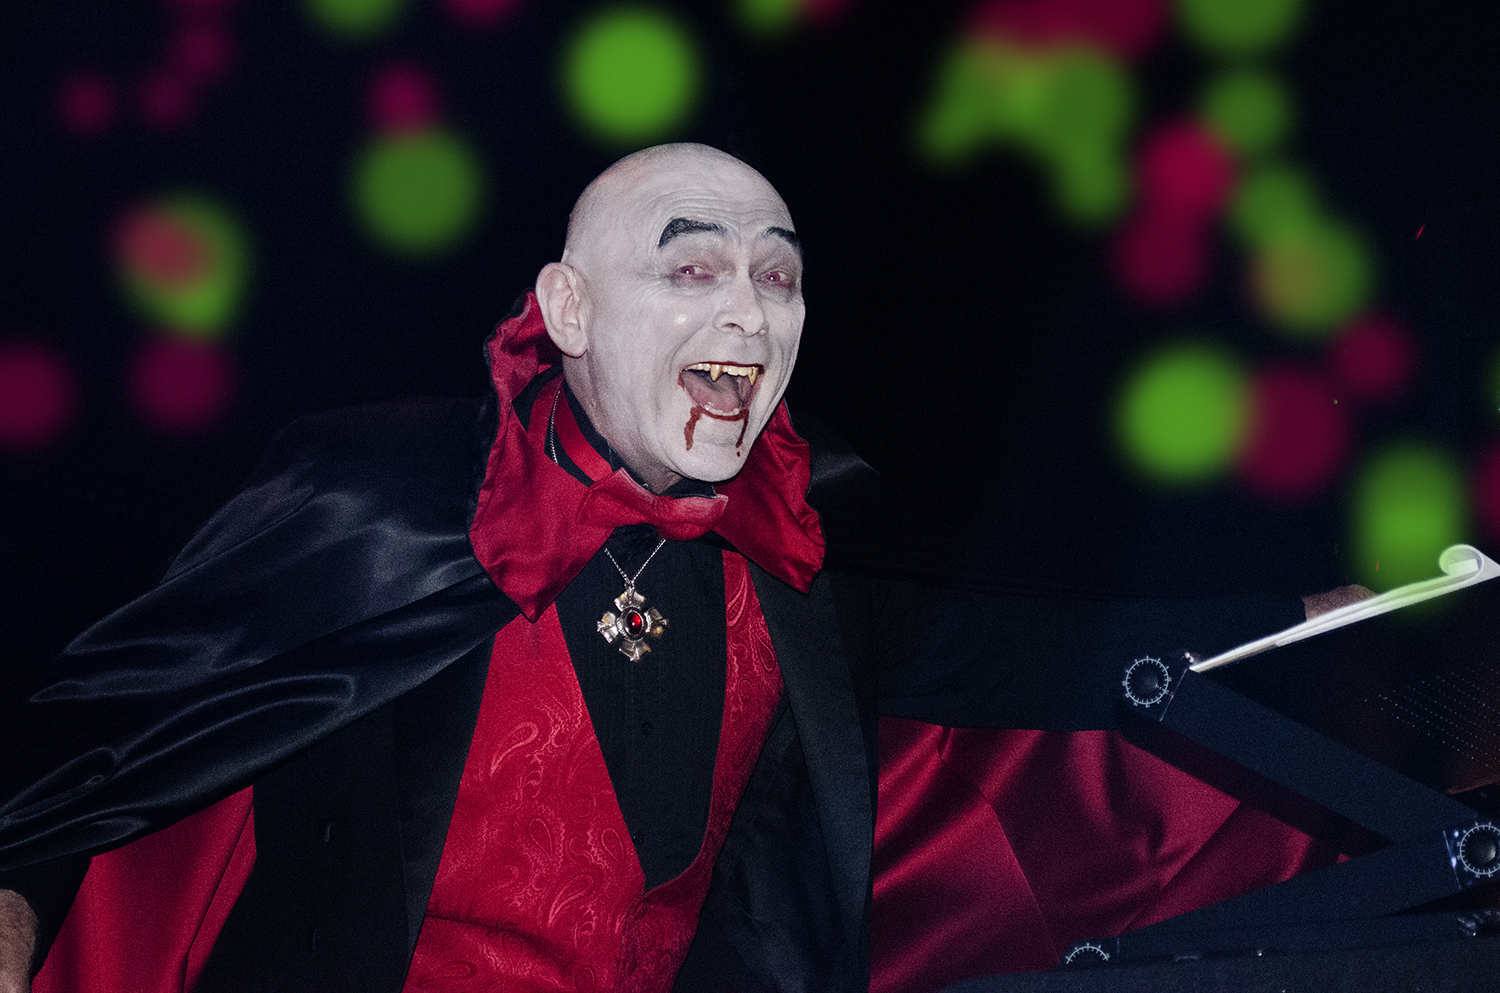 Terry as Dracula